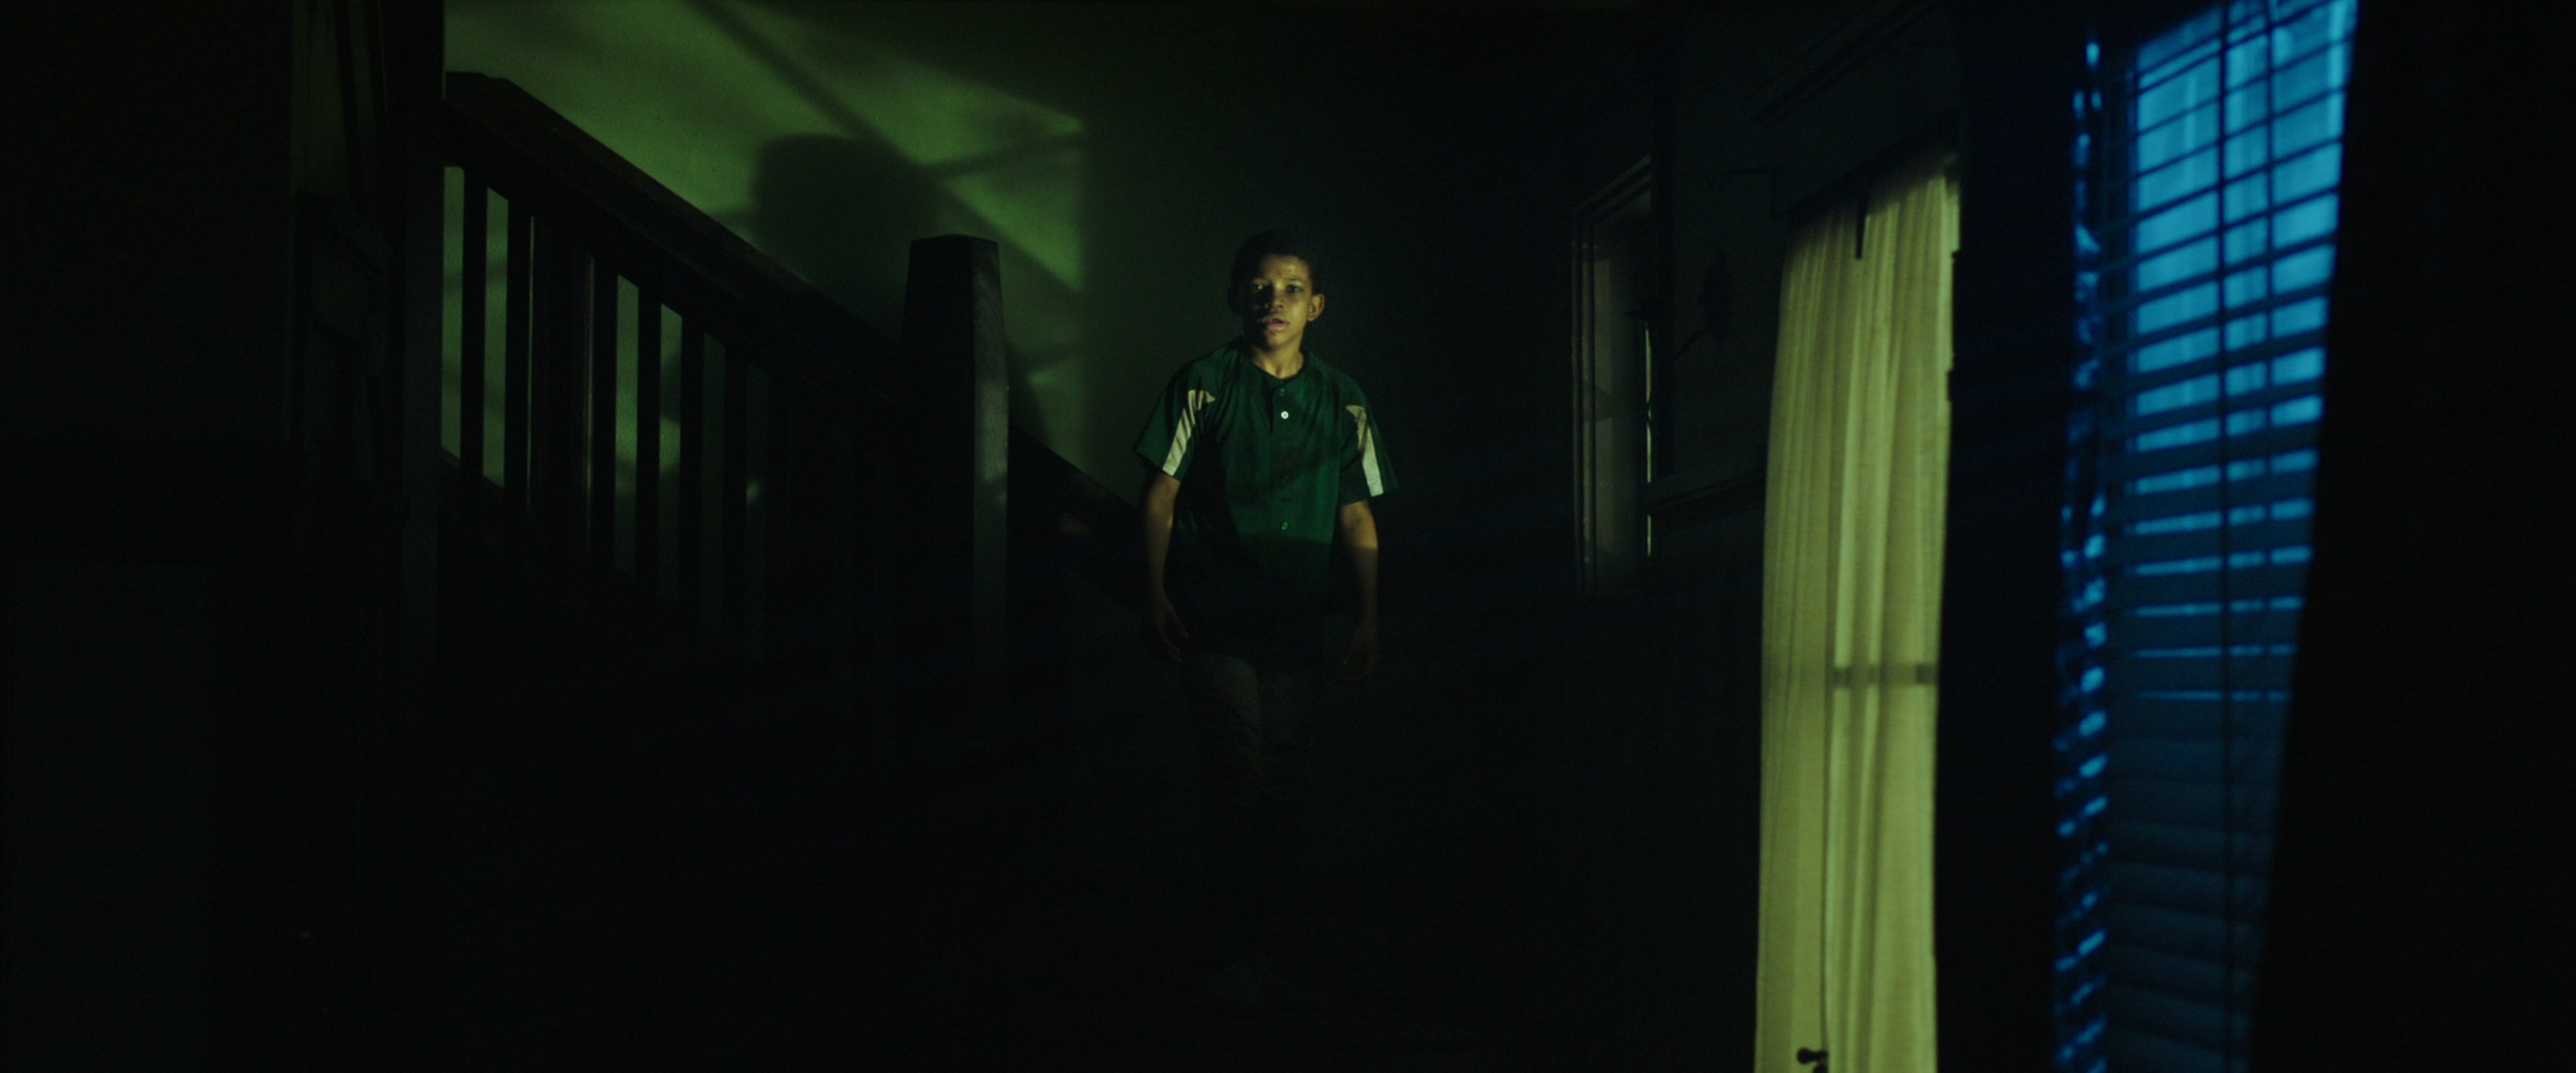 THE BOY BEHIND THE DOOR (Review and Interview)